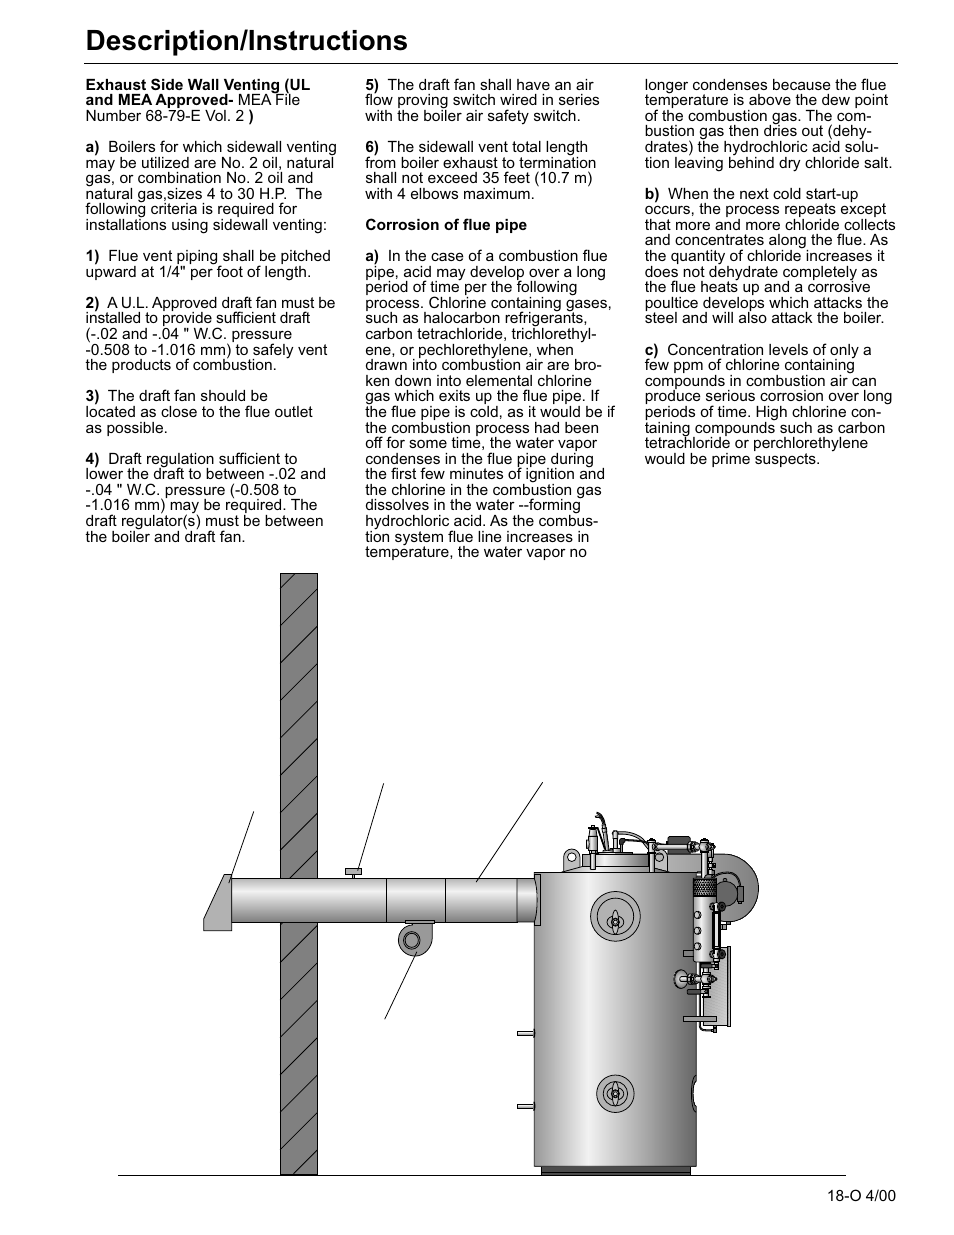 medium resolution of description instructions fulton classic icx or fb f vertical tubeless boilers steam oil fired user manual page 26 76